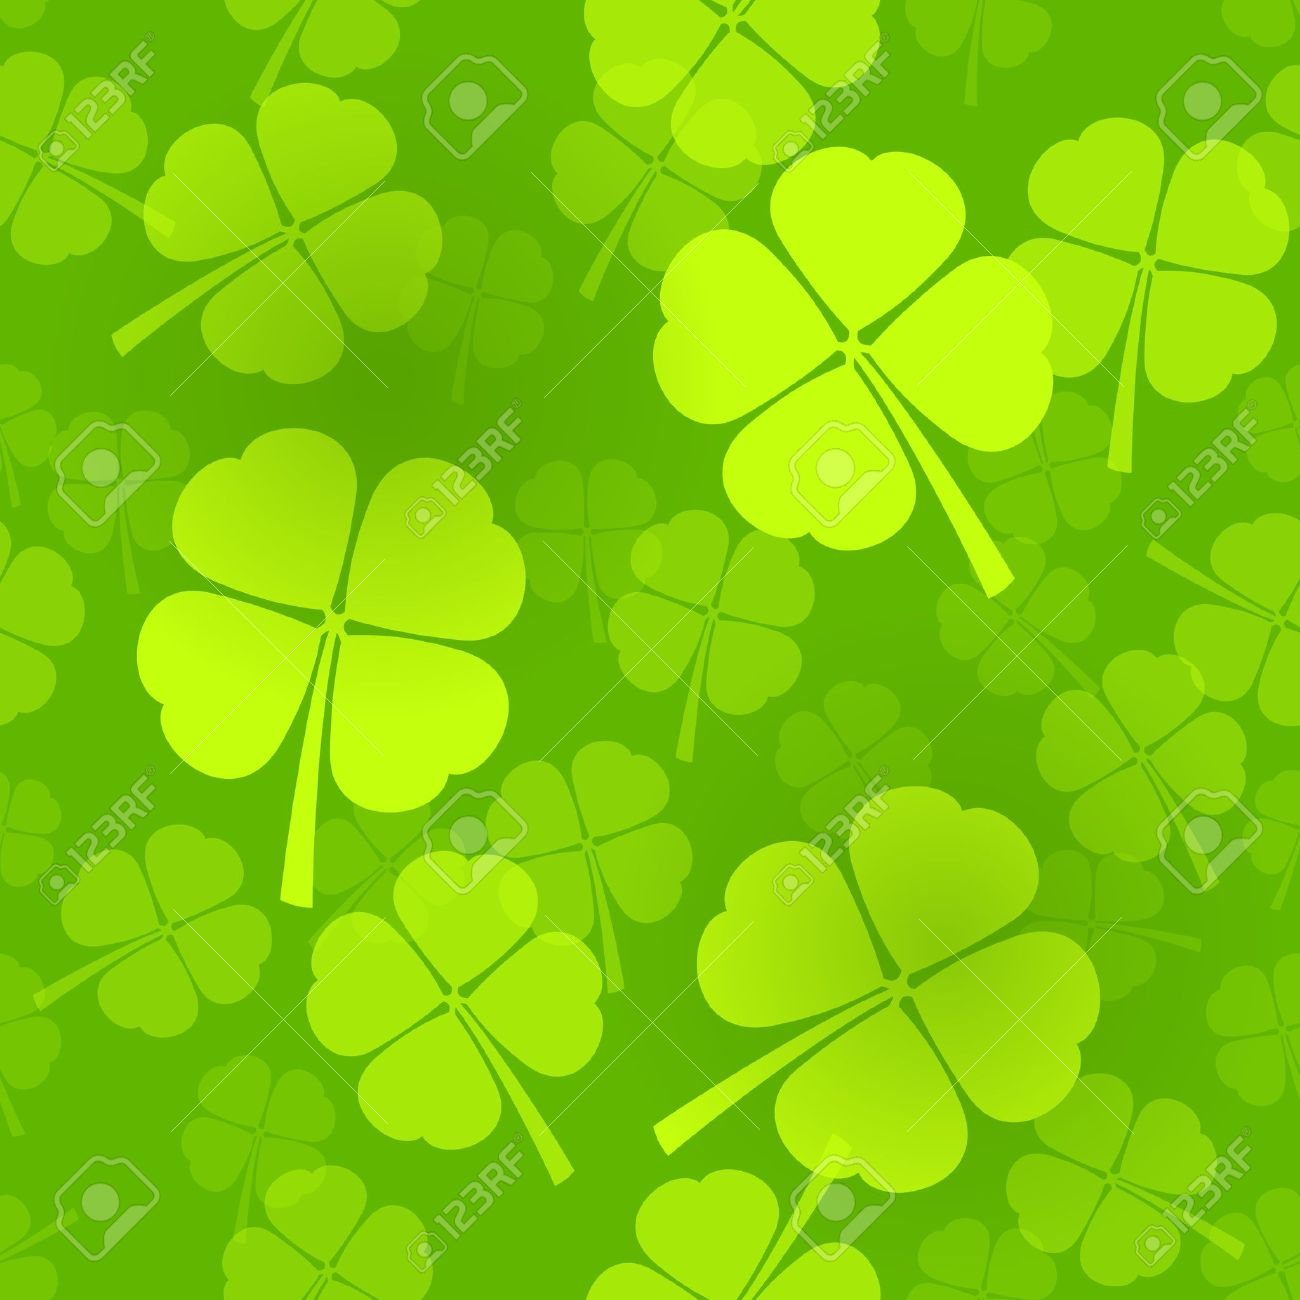 four leaf clover pattern royalty free cliparts vectors and stock